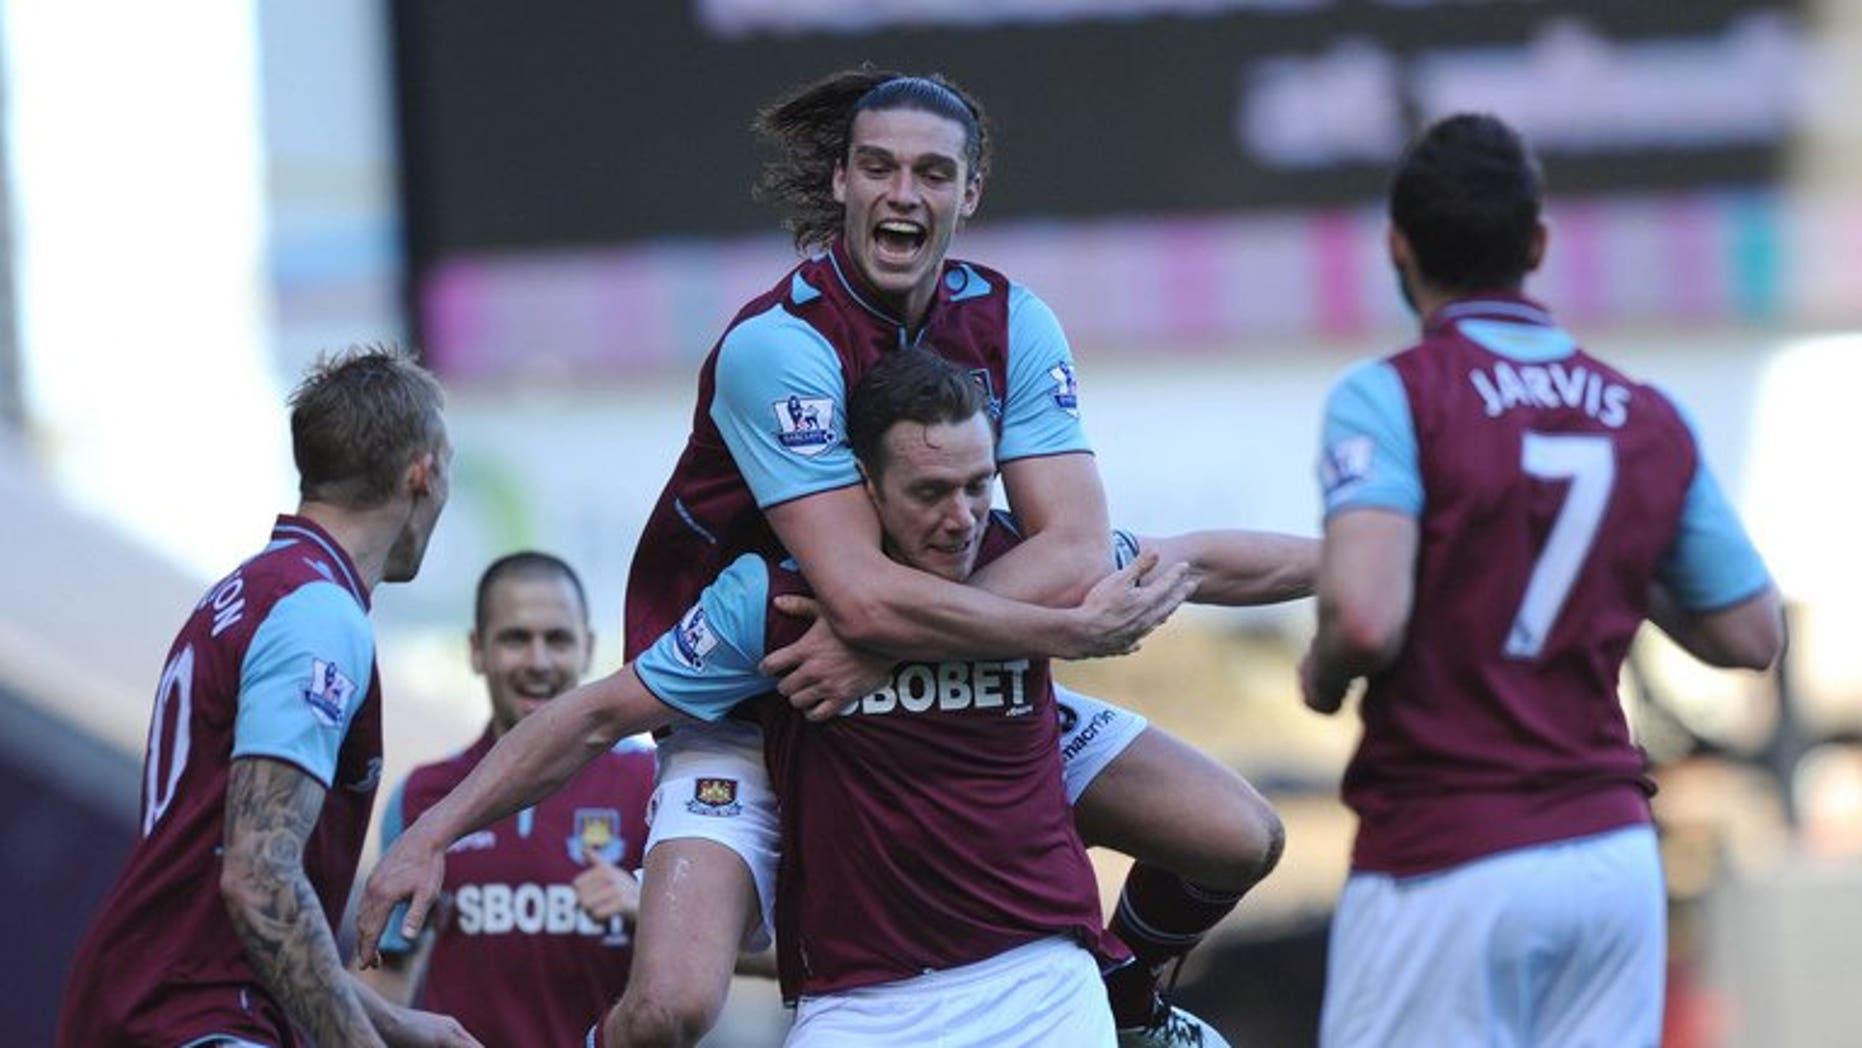 Andy Carroll (top) helps Kevin Nolan (below) celebrate a goal for West Ham against Wigan at Upton Park on April 20. England striker Carroll has completed his move from Liverpool to West Ham United, the east London club says.